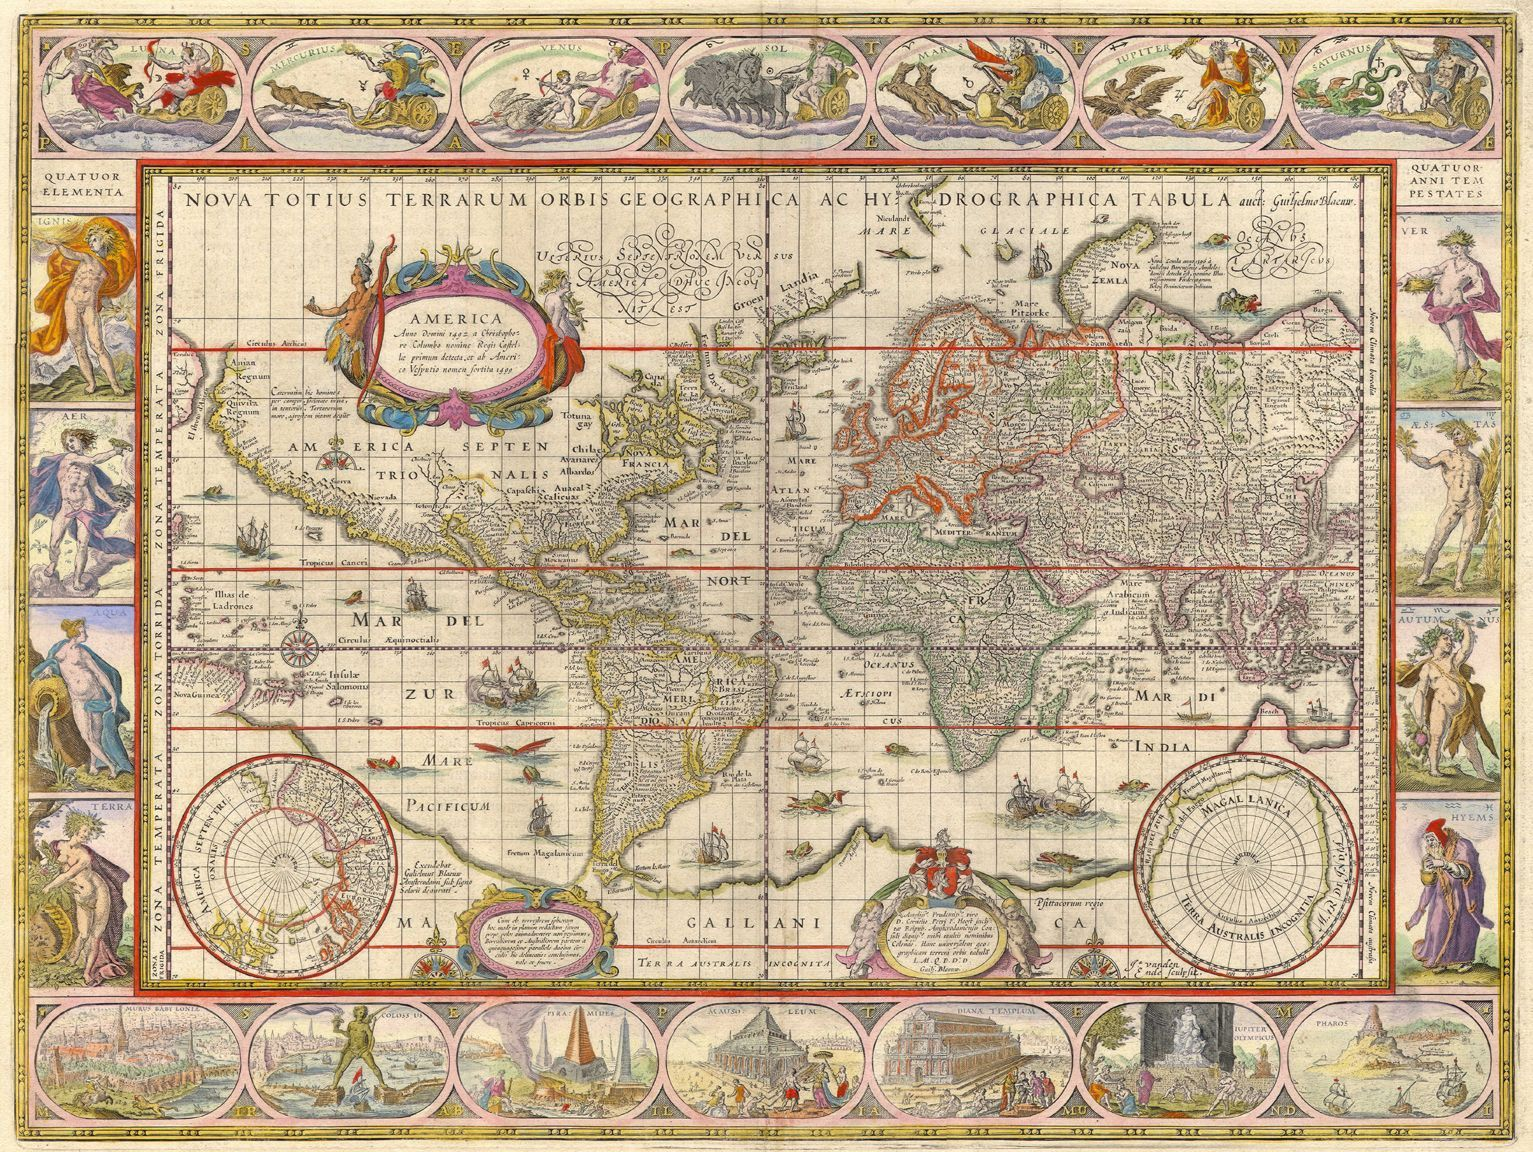 Nova totius terrarum orbis made in 1606 by the dutch cartographer antique world map old vintage map fade resistant hd art print or canvas in art prints gumiabroncs Image collections